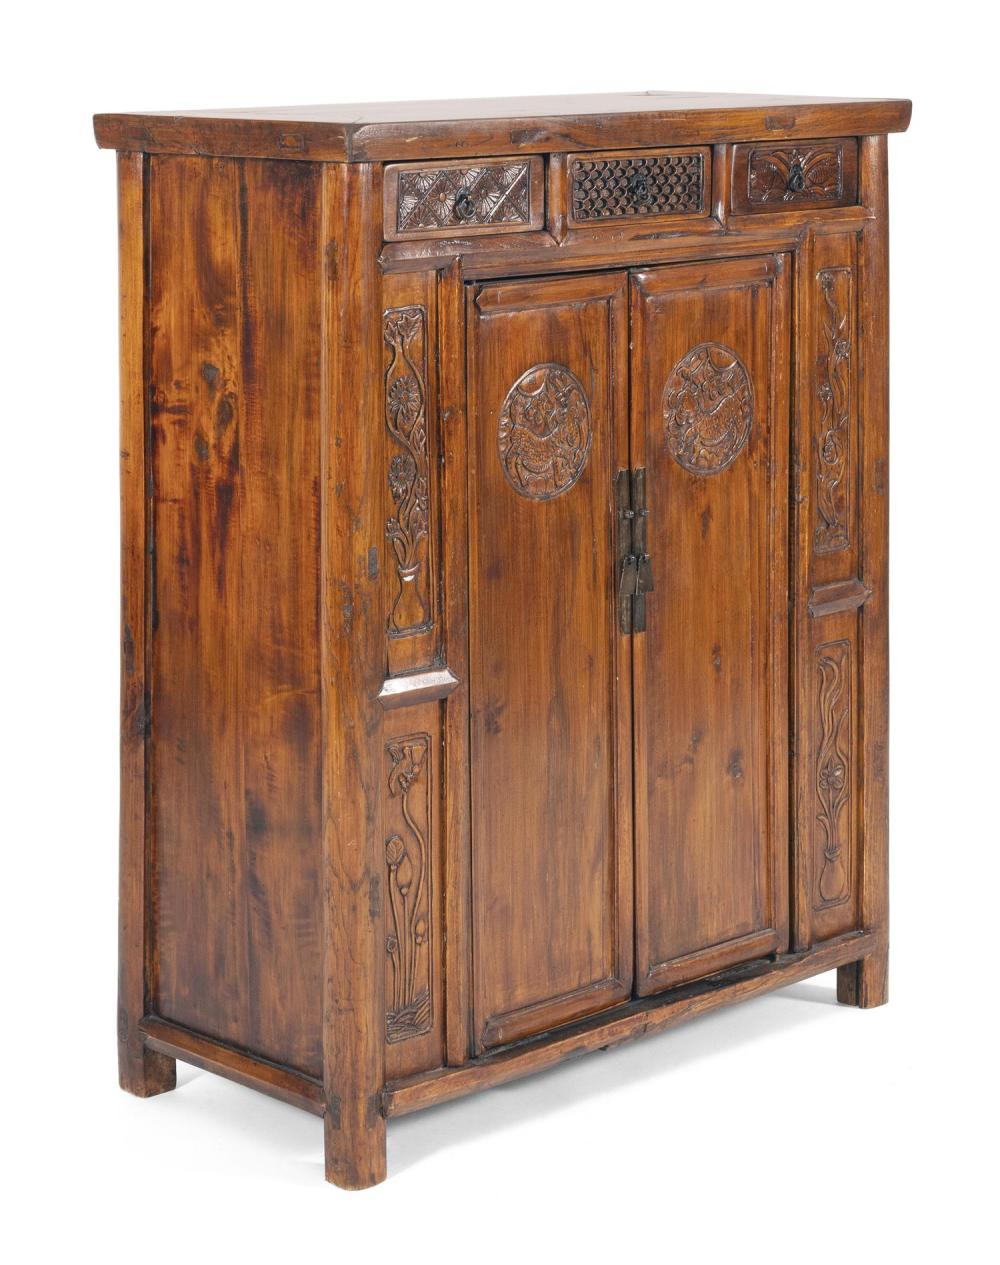 CHINESE ROSEWOOD CUPBOARD Three carved drawers over a two-door cabinet that opens to reveal two interior shelves separated by two ha...